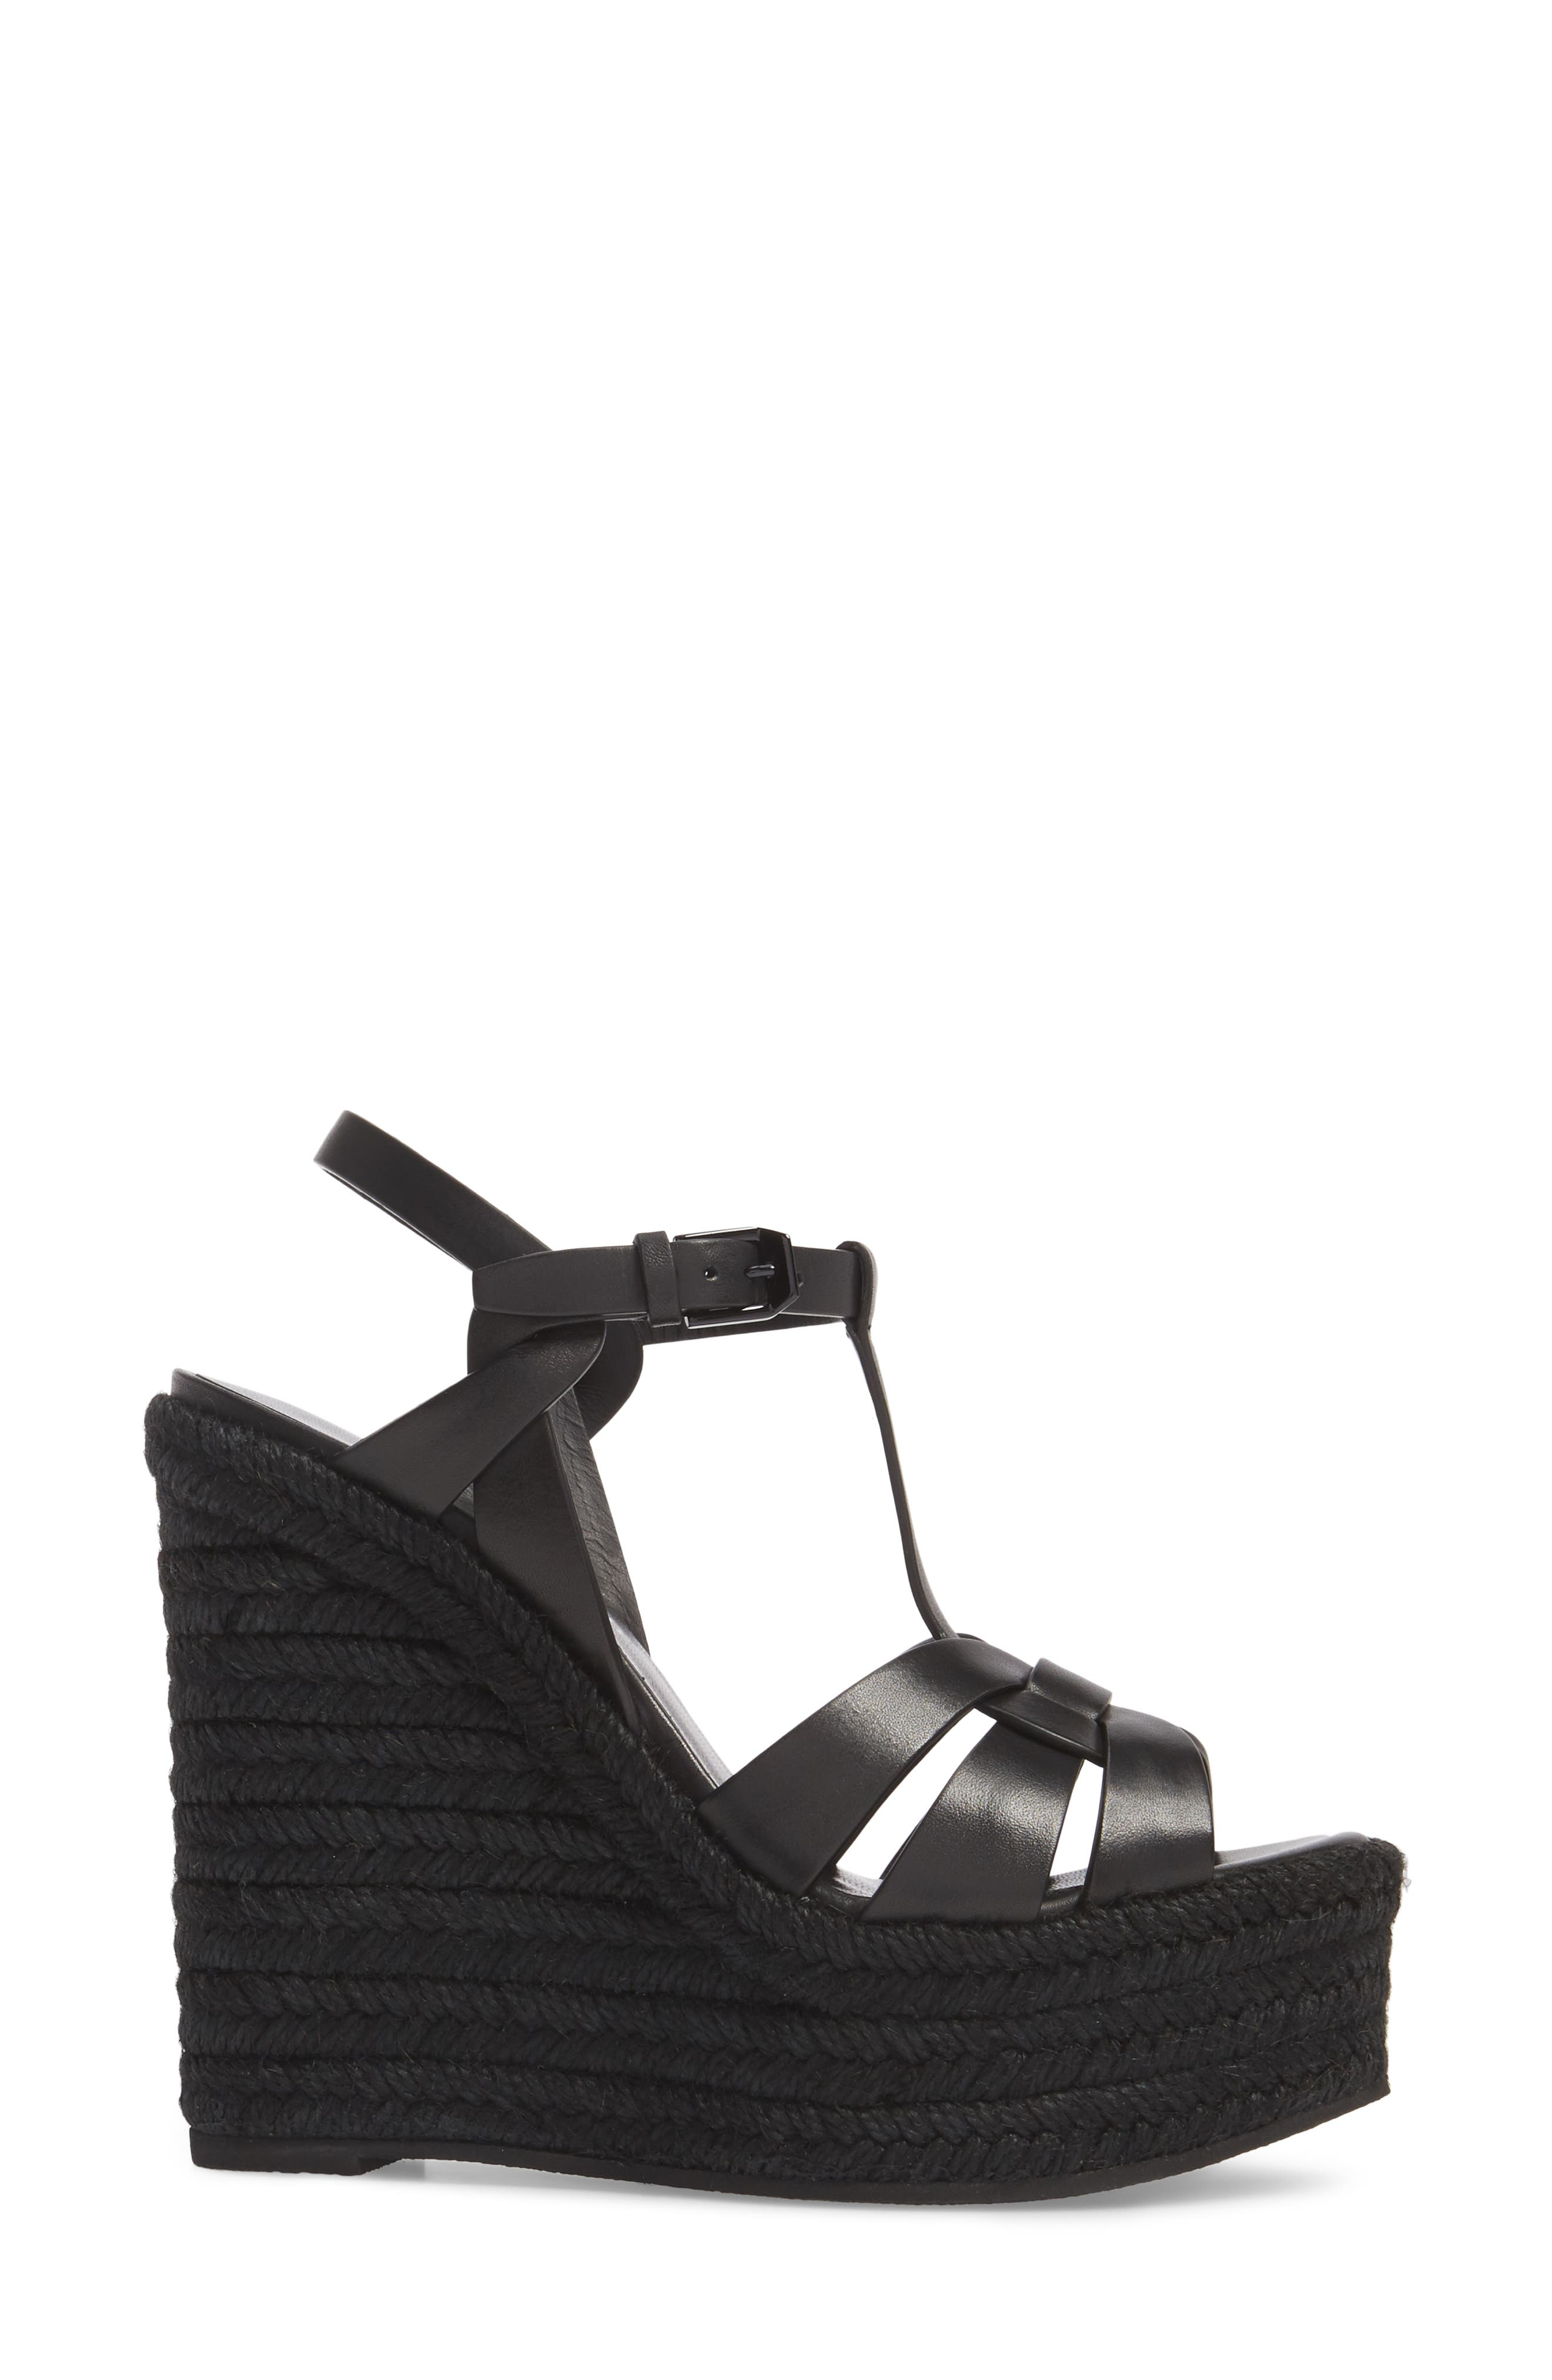 SAINT LAURENT, Tribute Espadrille Wedge, Alternate thumbnail 3, color, BLACK